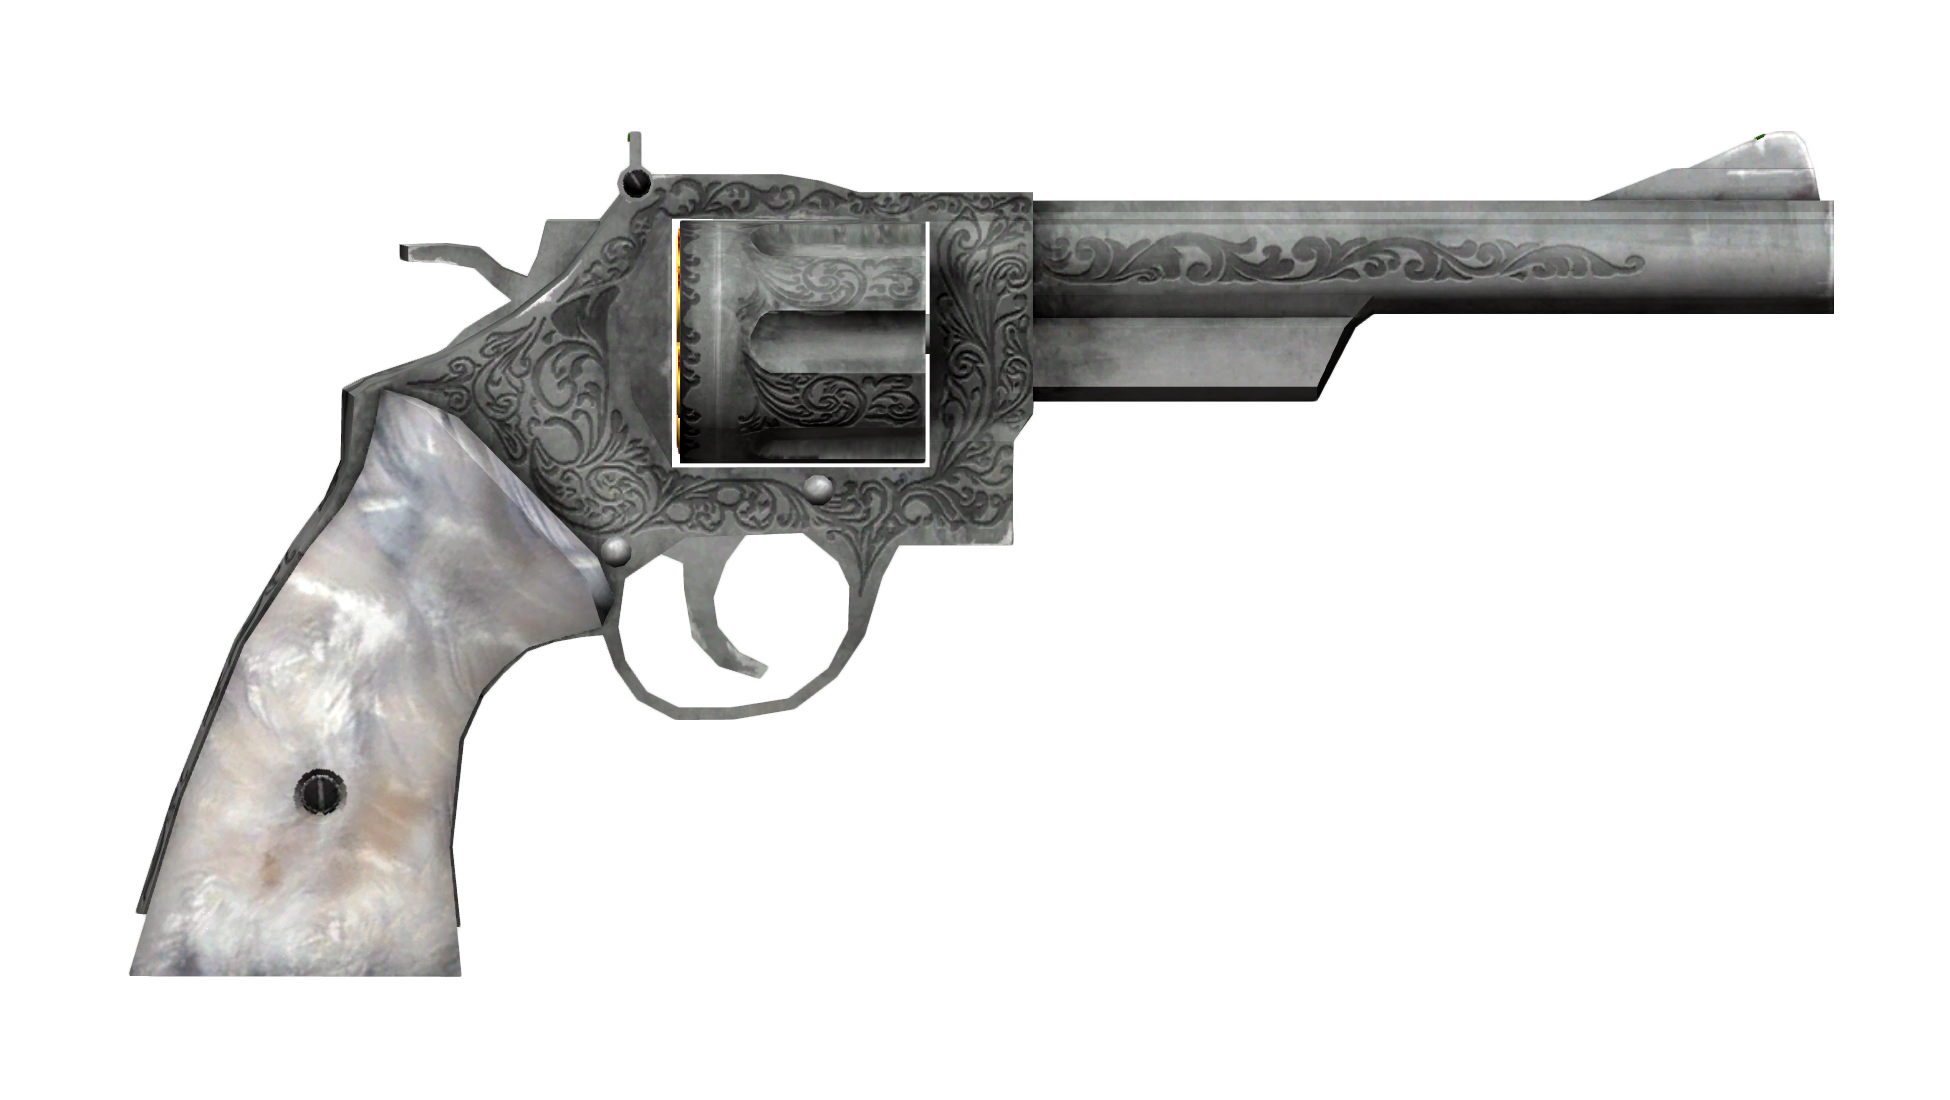 44 Magnum Revolver Fallout Wiki Fandom Powered By Wikia